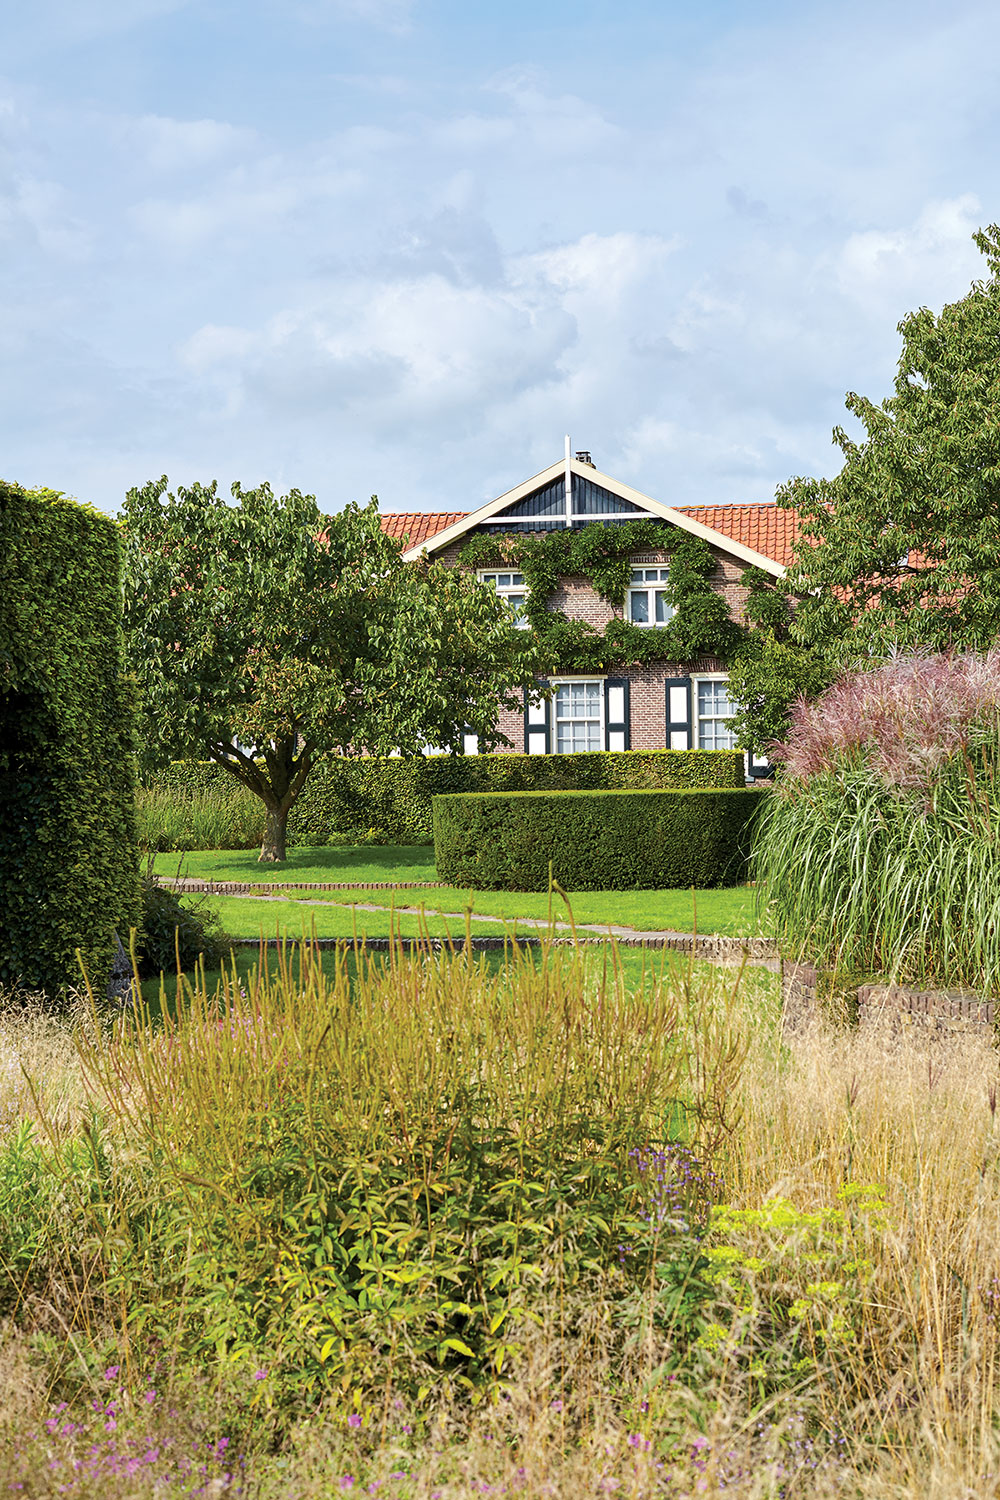 Piet Oudolf gardens and home